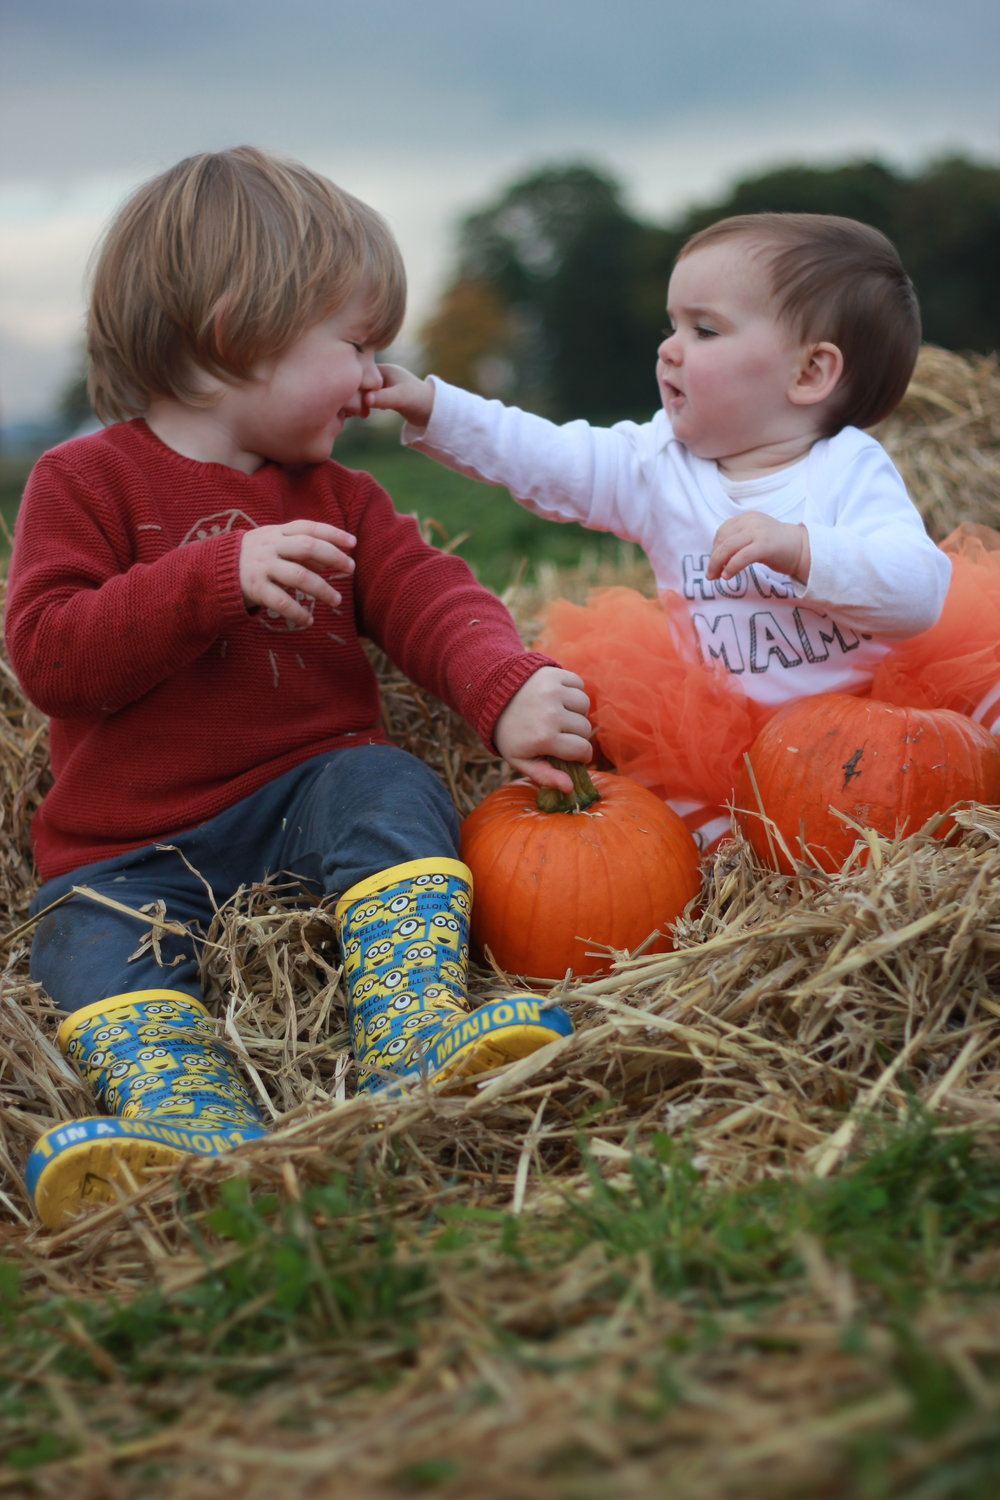 Brocksbushes farm shop and tea room Halloween 2016 Northumberland pumpkin patch kids events baby toddler. Eileen and Joe children's entertainer dressed as a witch, with a toddler. Baby and toddler play in a pumpkin patch. siblings